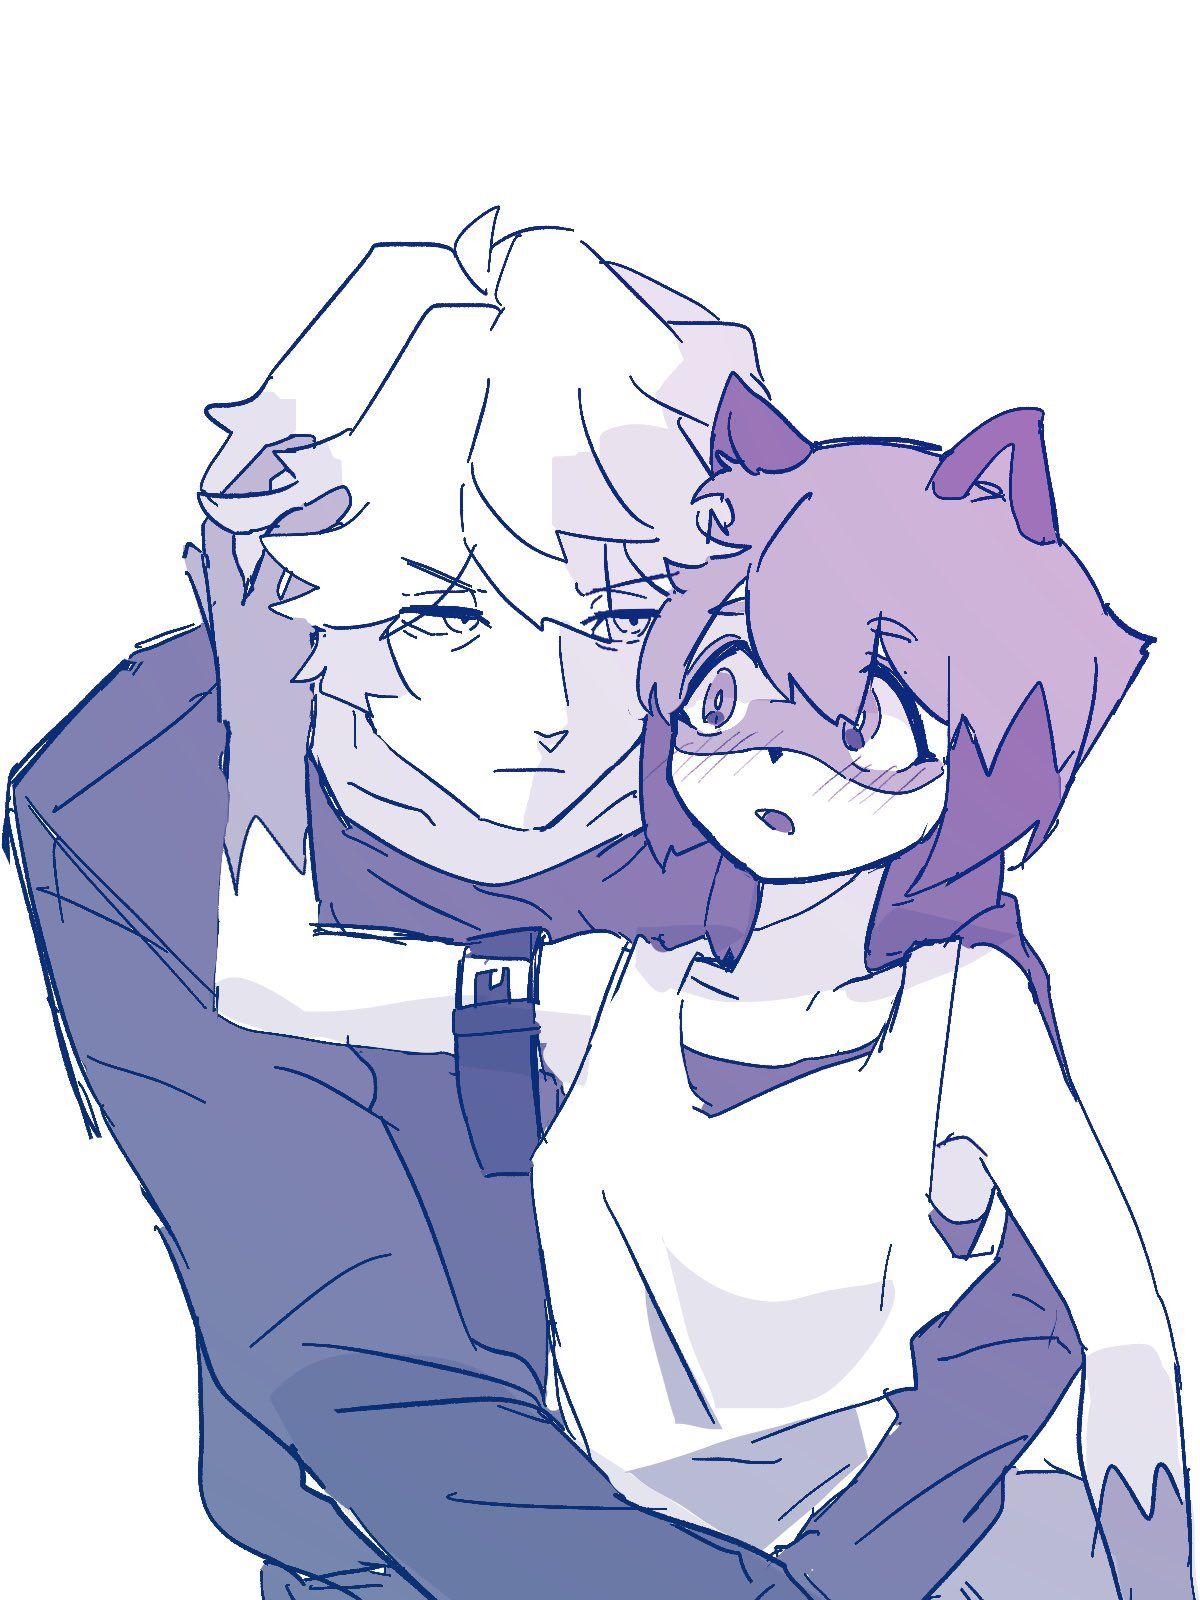 Pin By The Pompotte22 On Bna In 2020 Anime Anime Eyes Furry Art